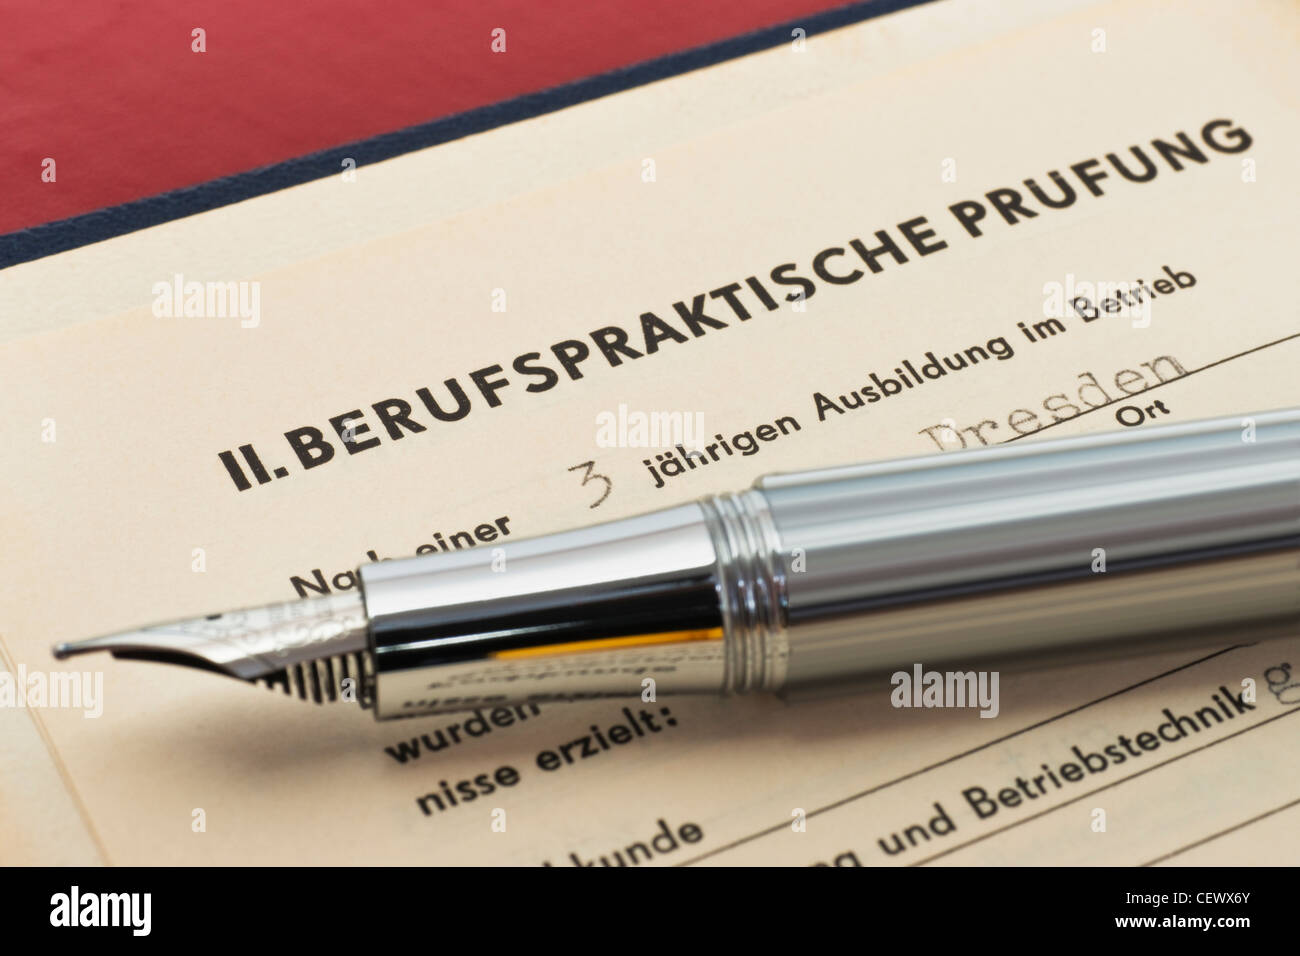 GDR craft certificate from 1954, the page of the work practical test is opened, a fountain pen is alongside - Stock Image